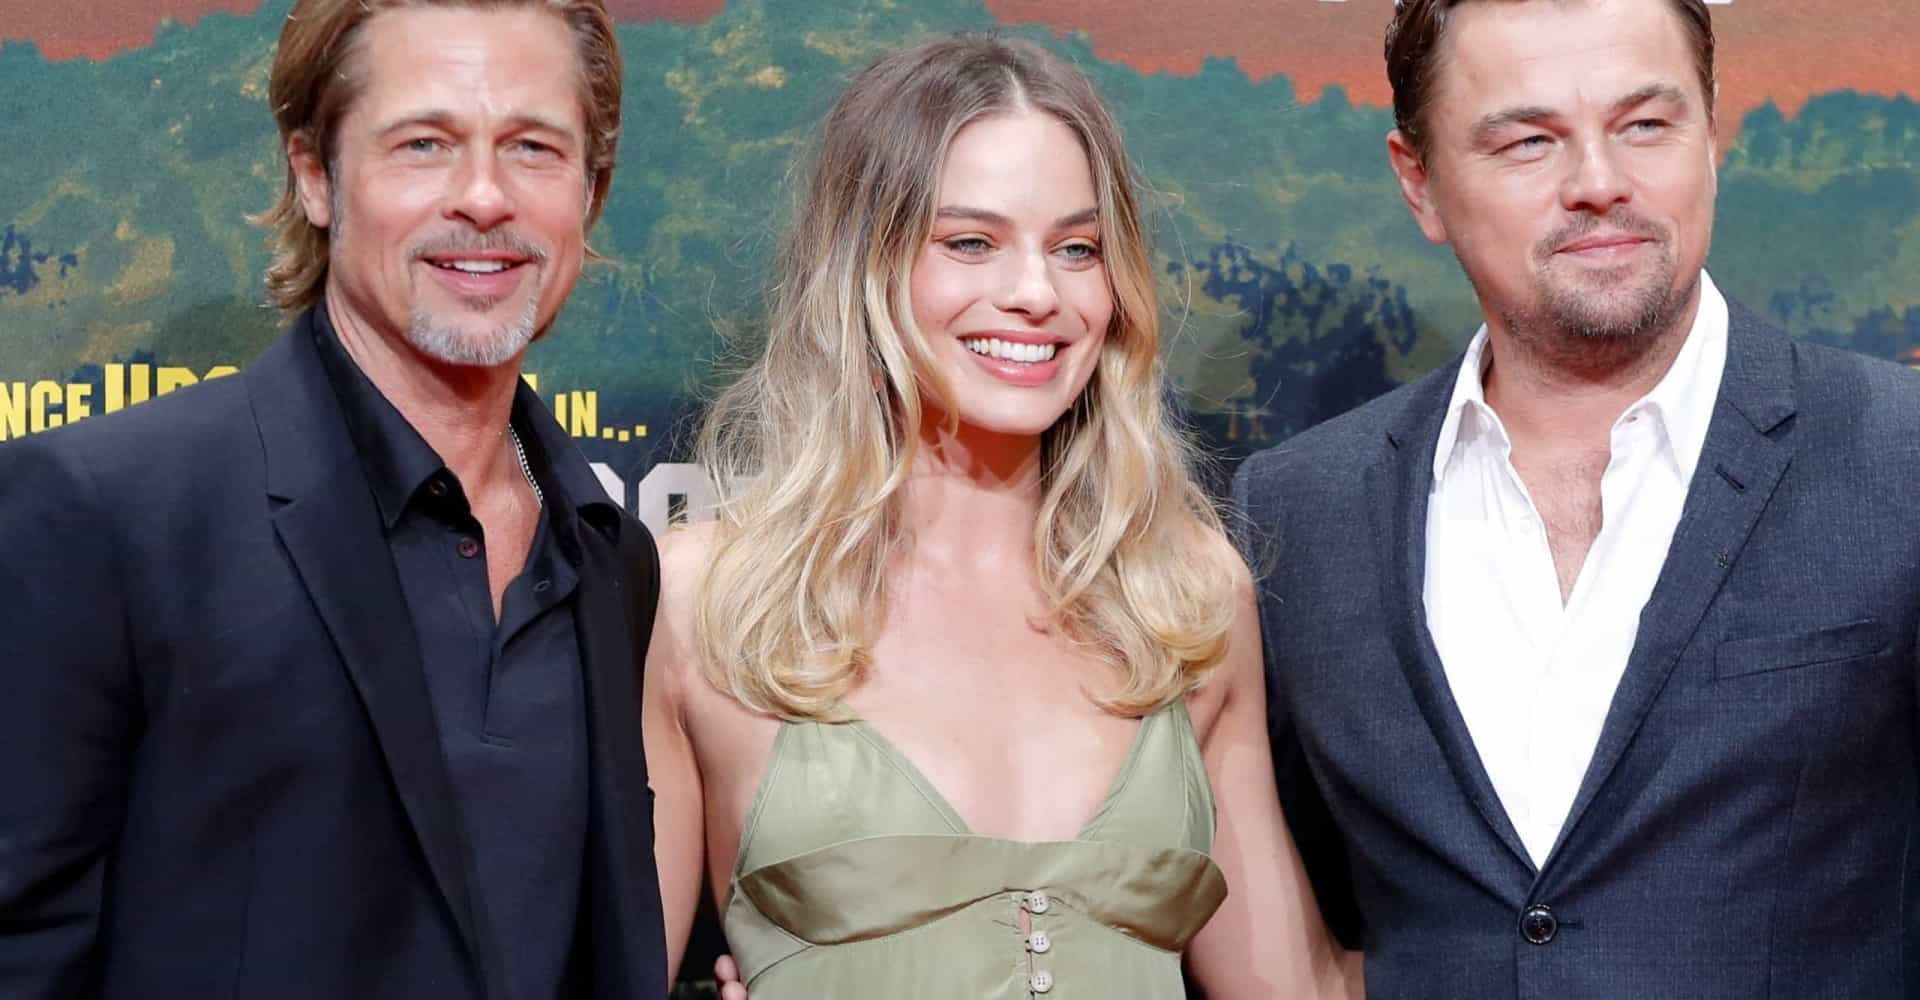 Quentin Tarantino's controversial 'Once Upon a Time in Hollywood'